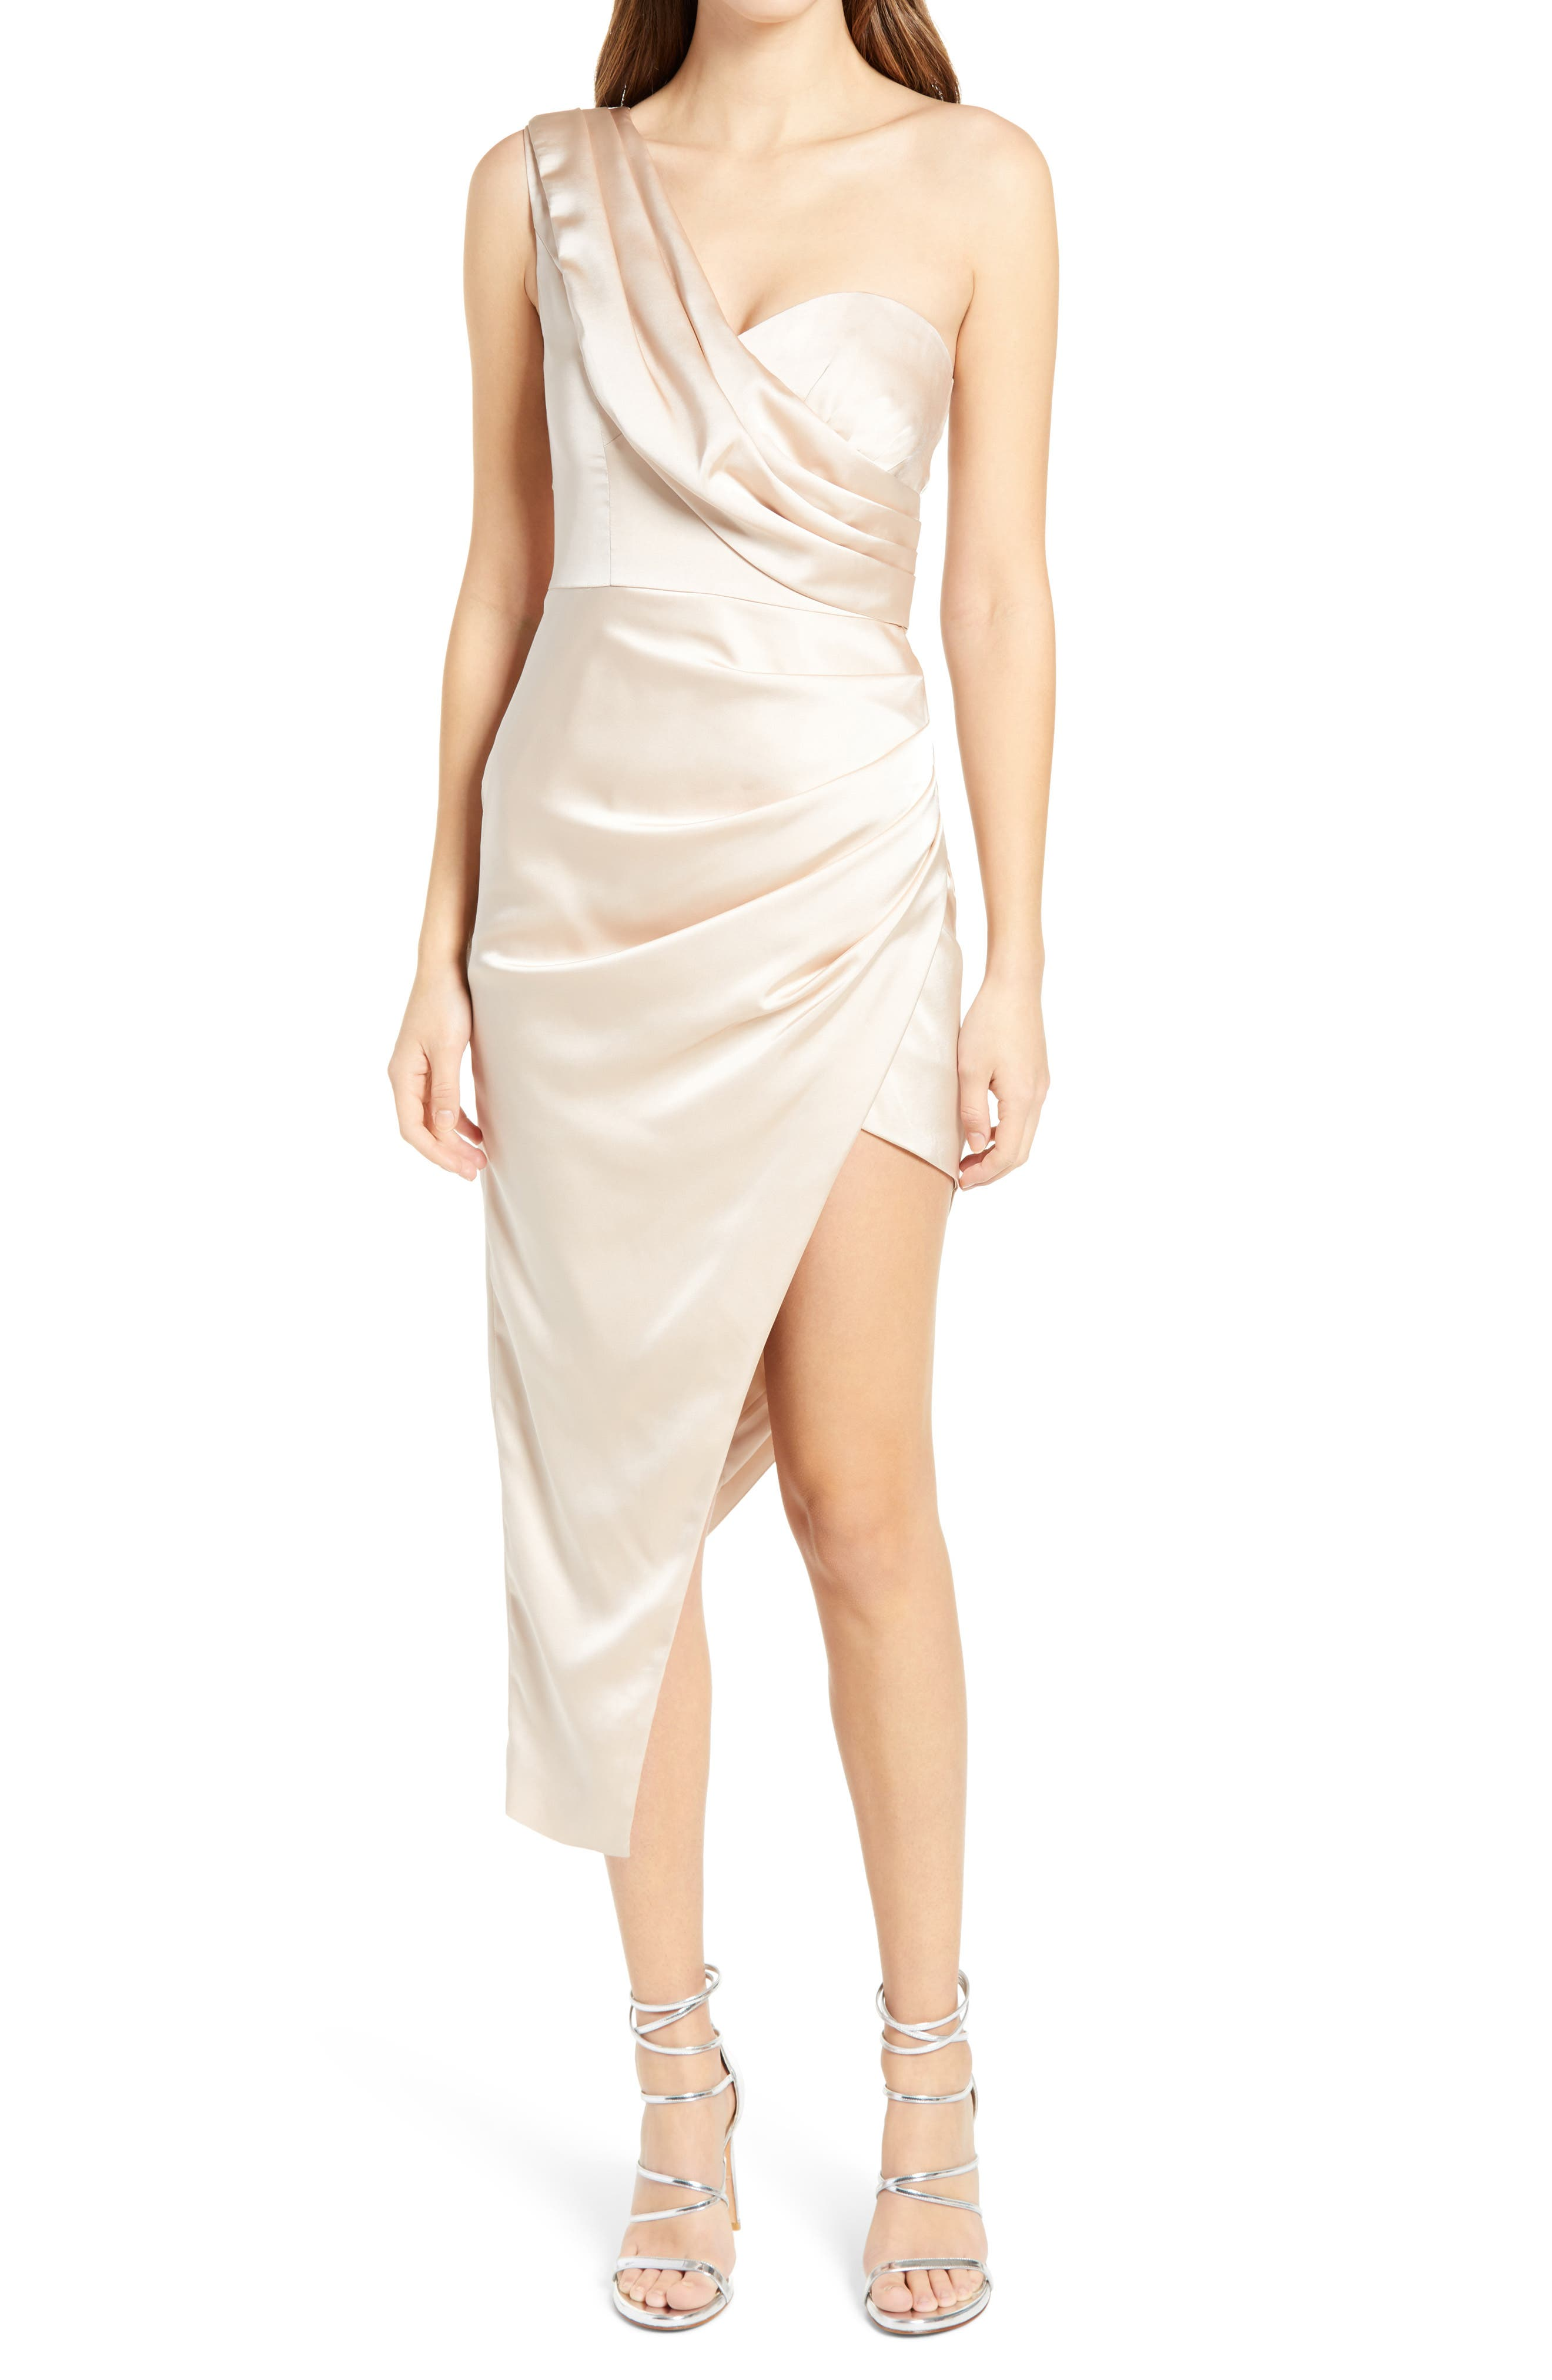 Womens One Shoulder Ruffle Frill Chiffon Casual Party Club Above Knee Dress S-XL